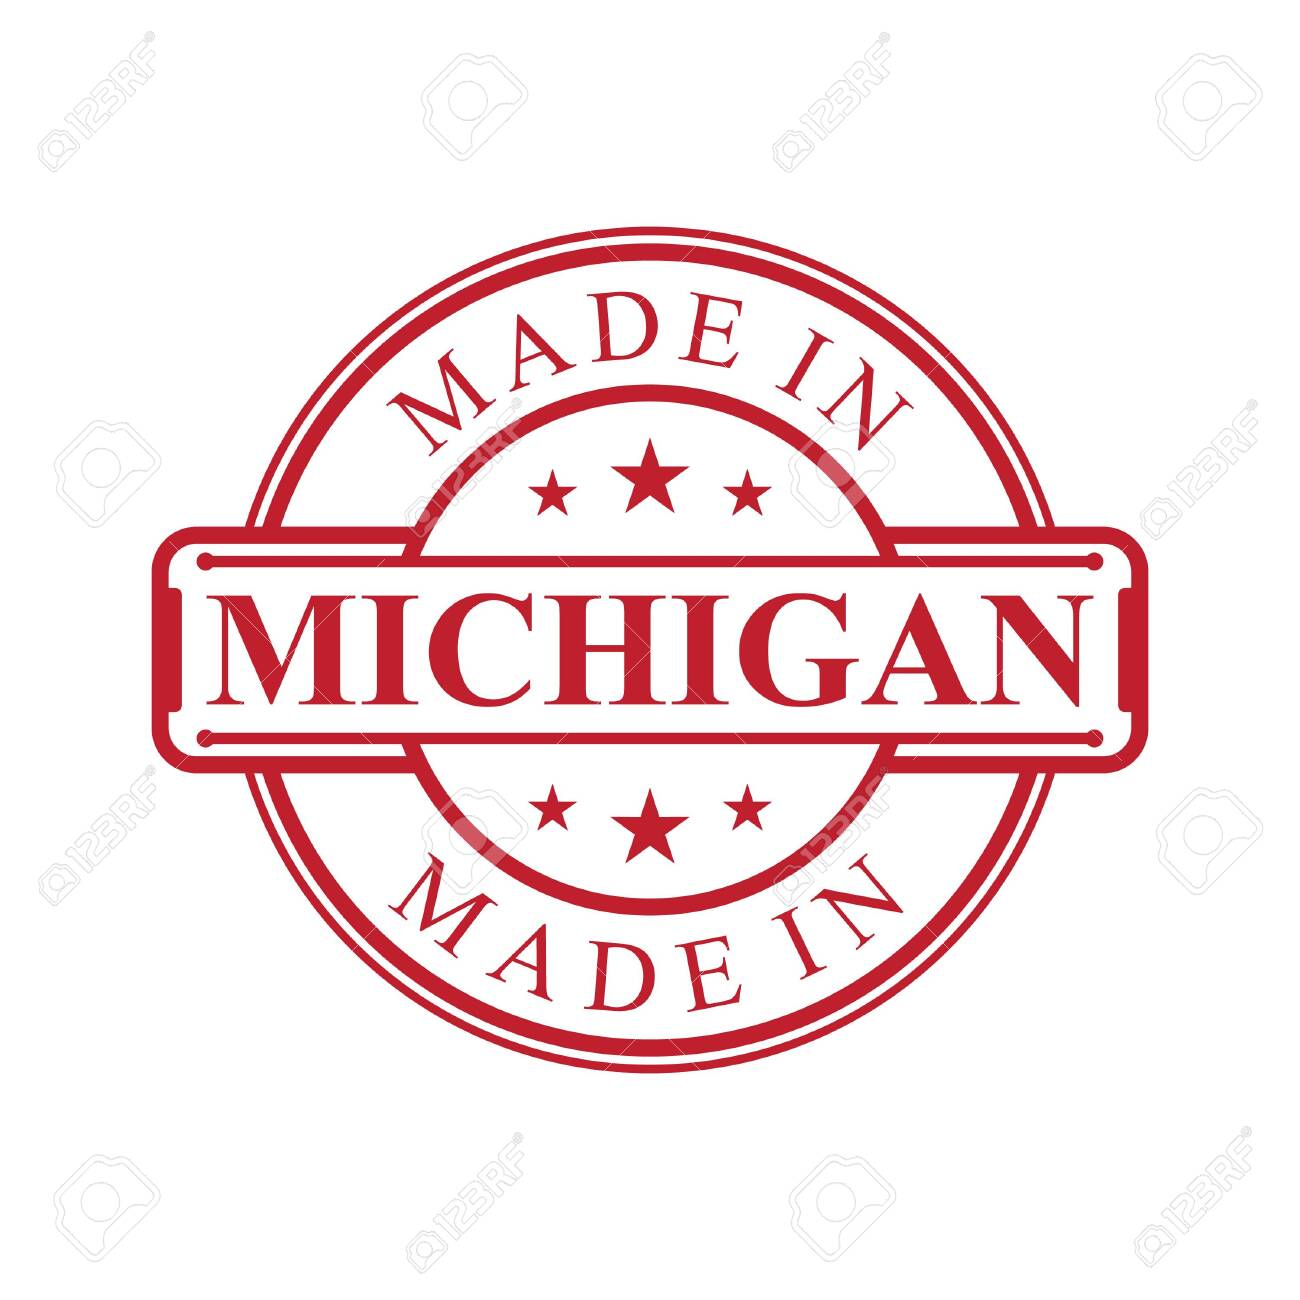 Made In Michigan >> Made In Michigan Label Icon With Red Color Emblem On The White